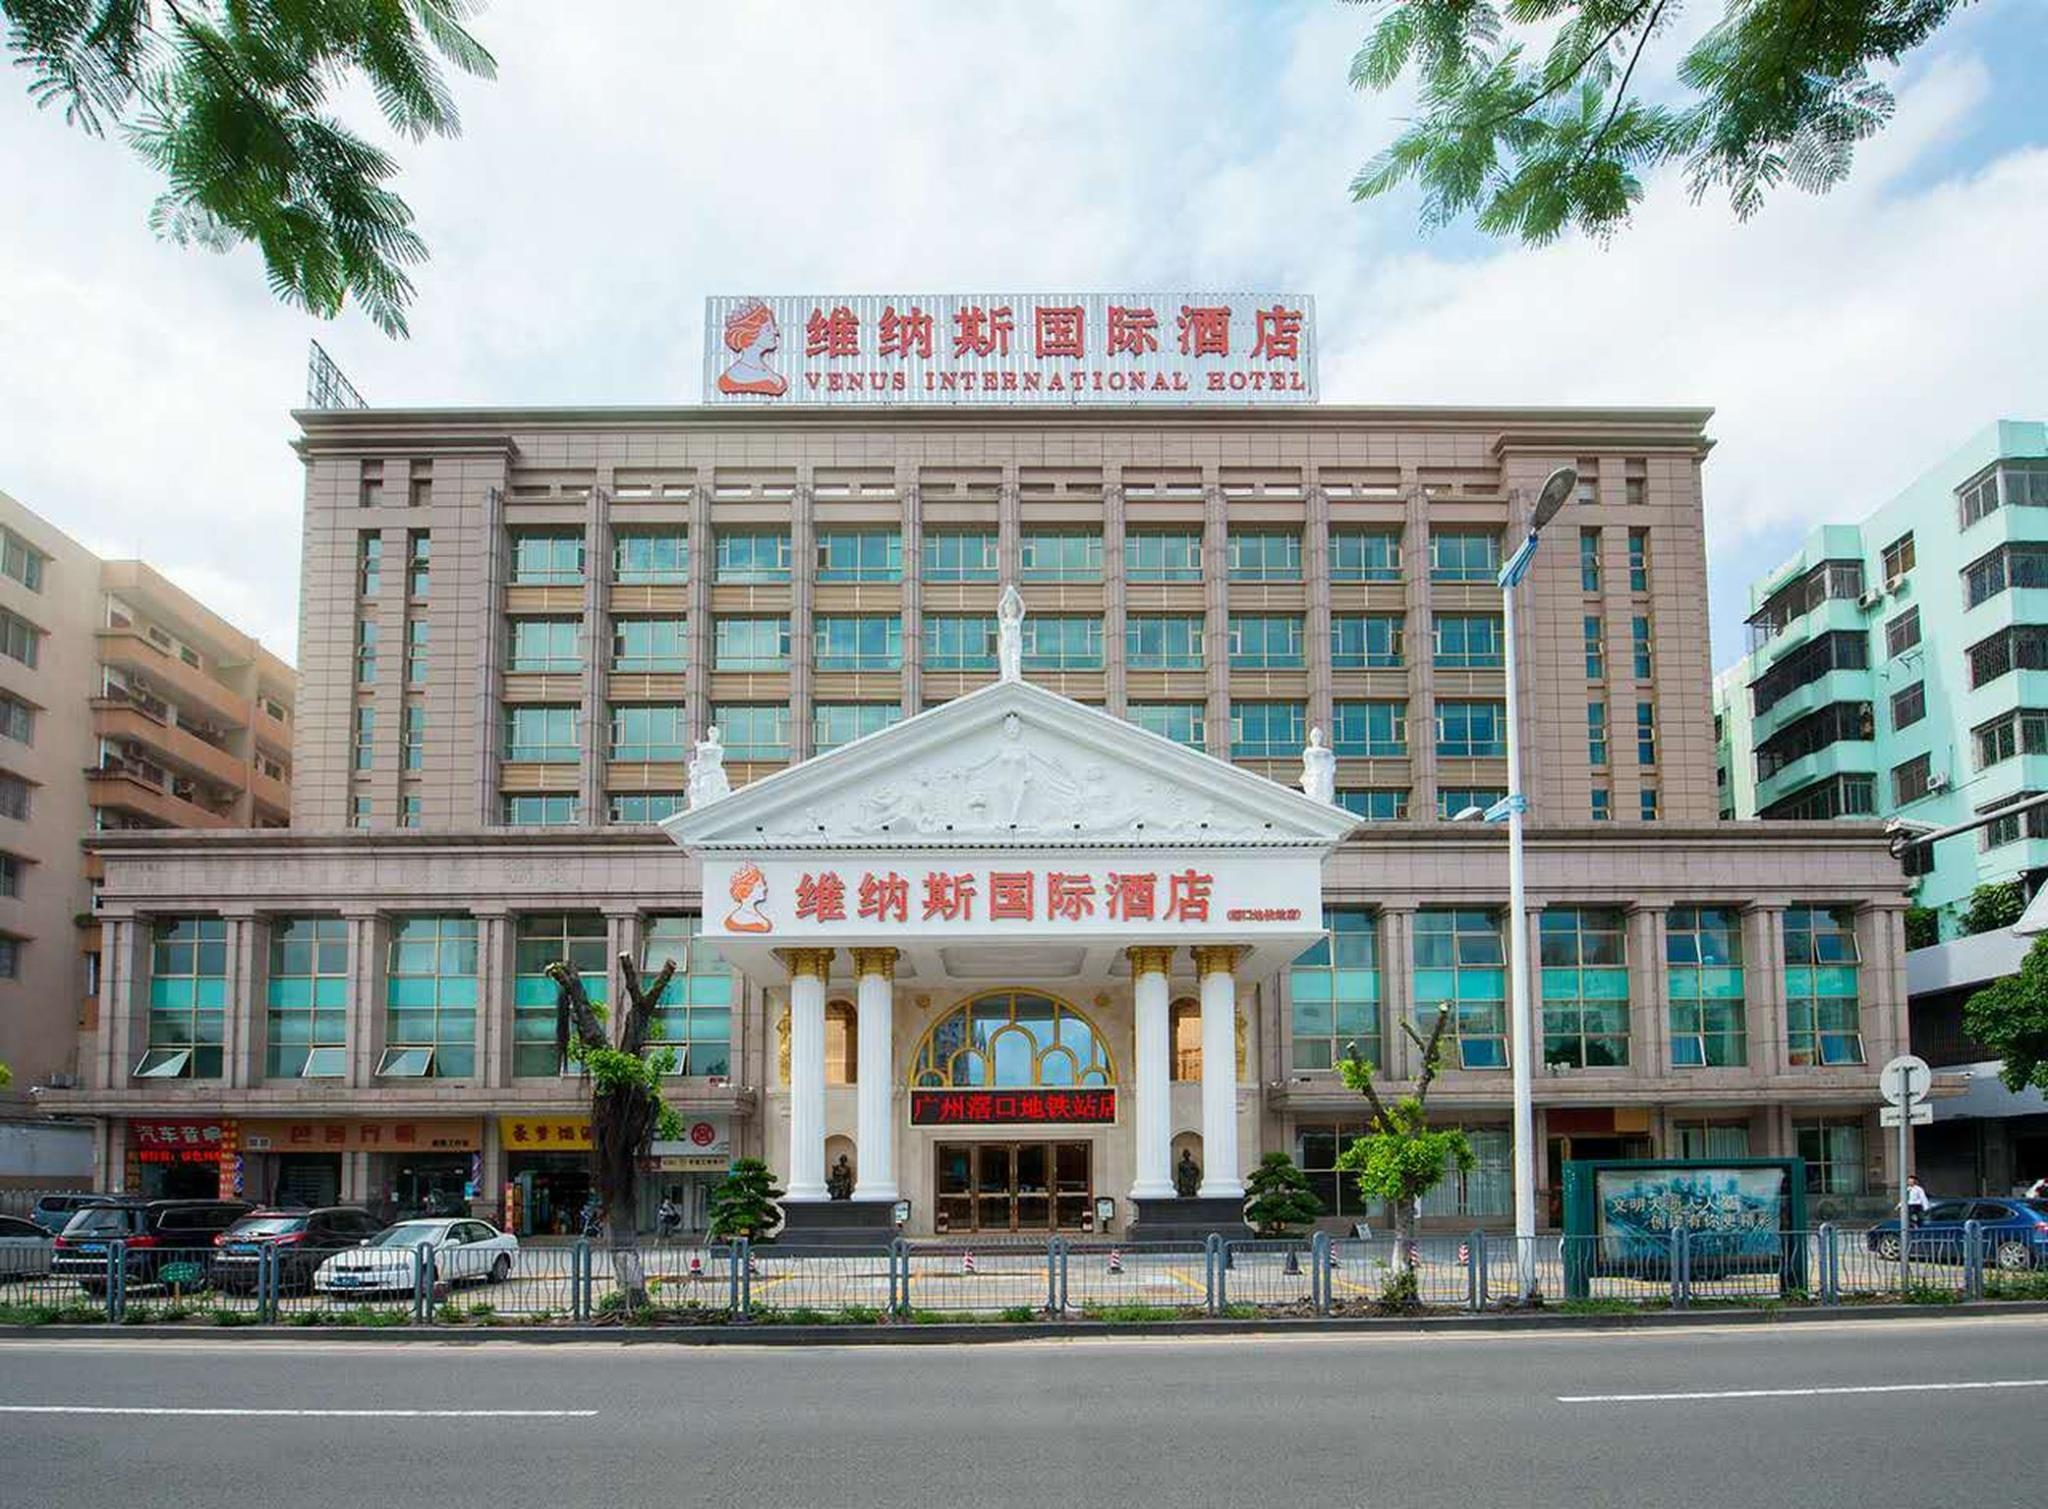 Venus International Hotel Foshan Jiaokou Metro